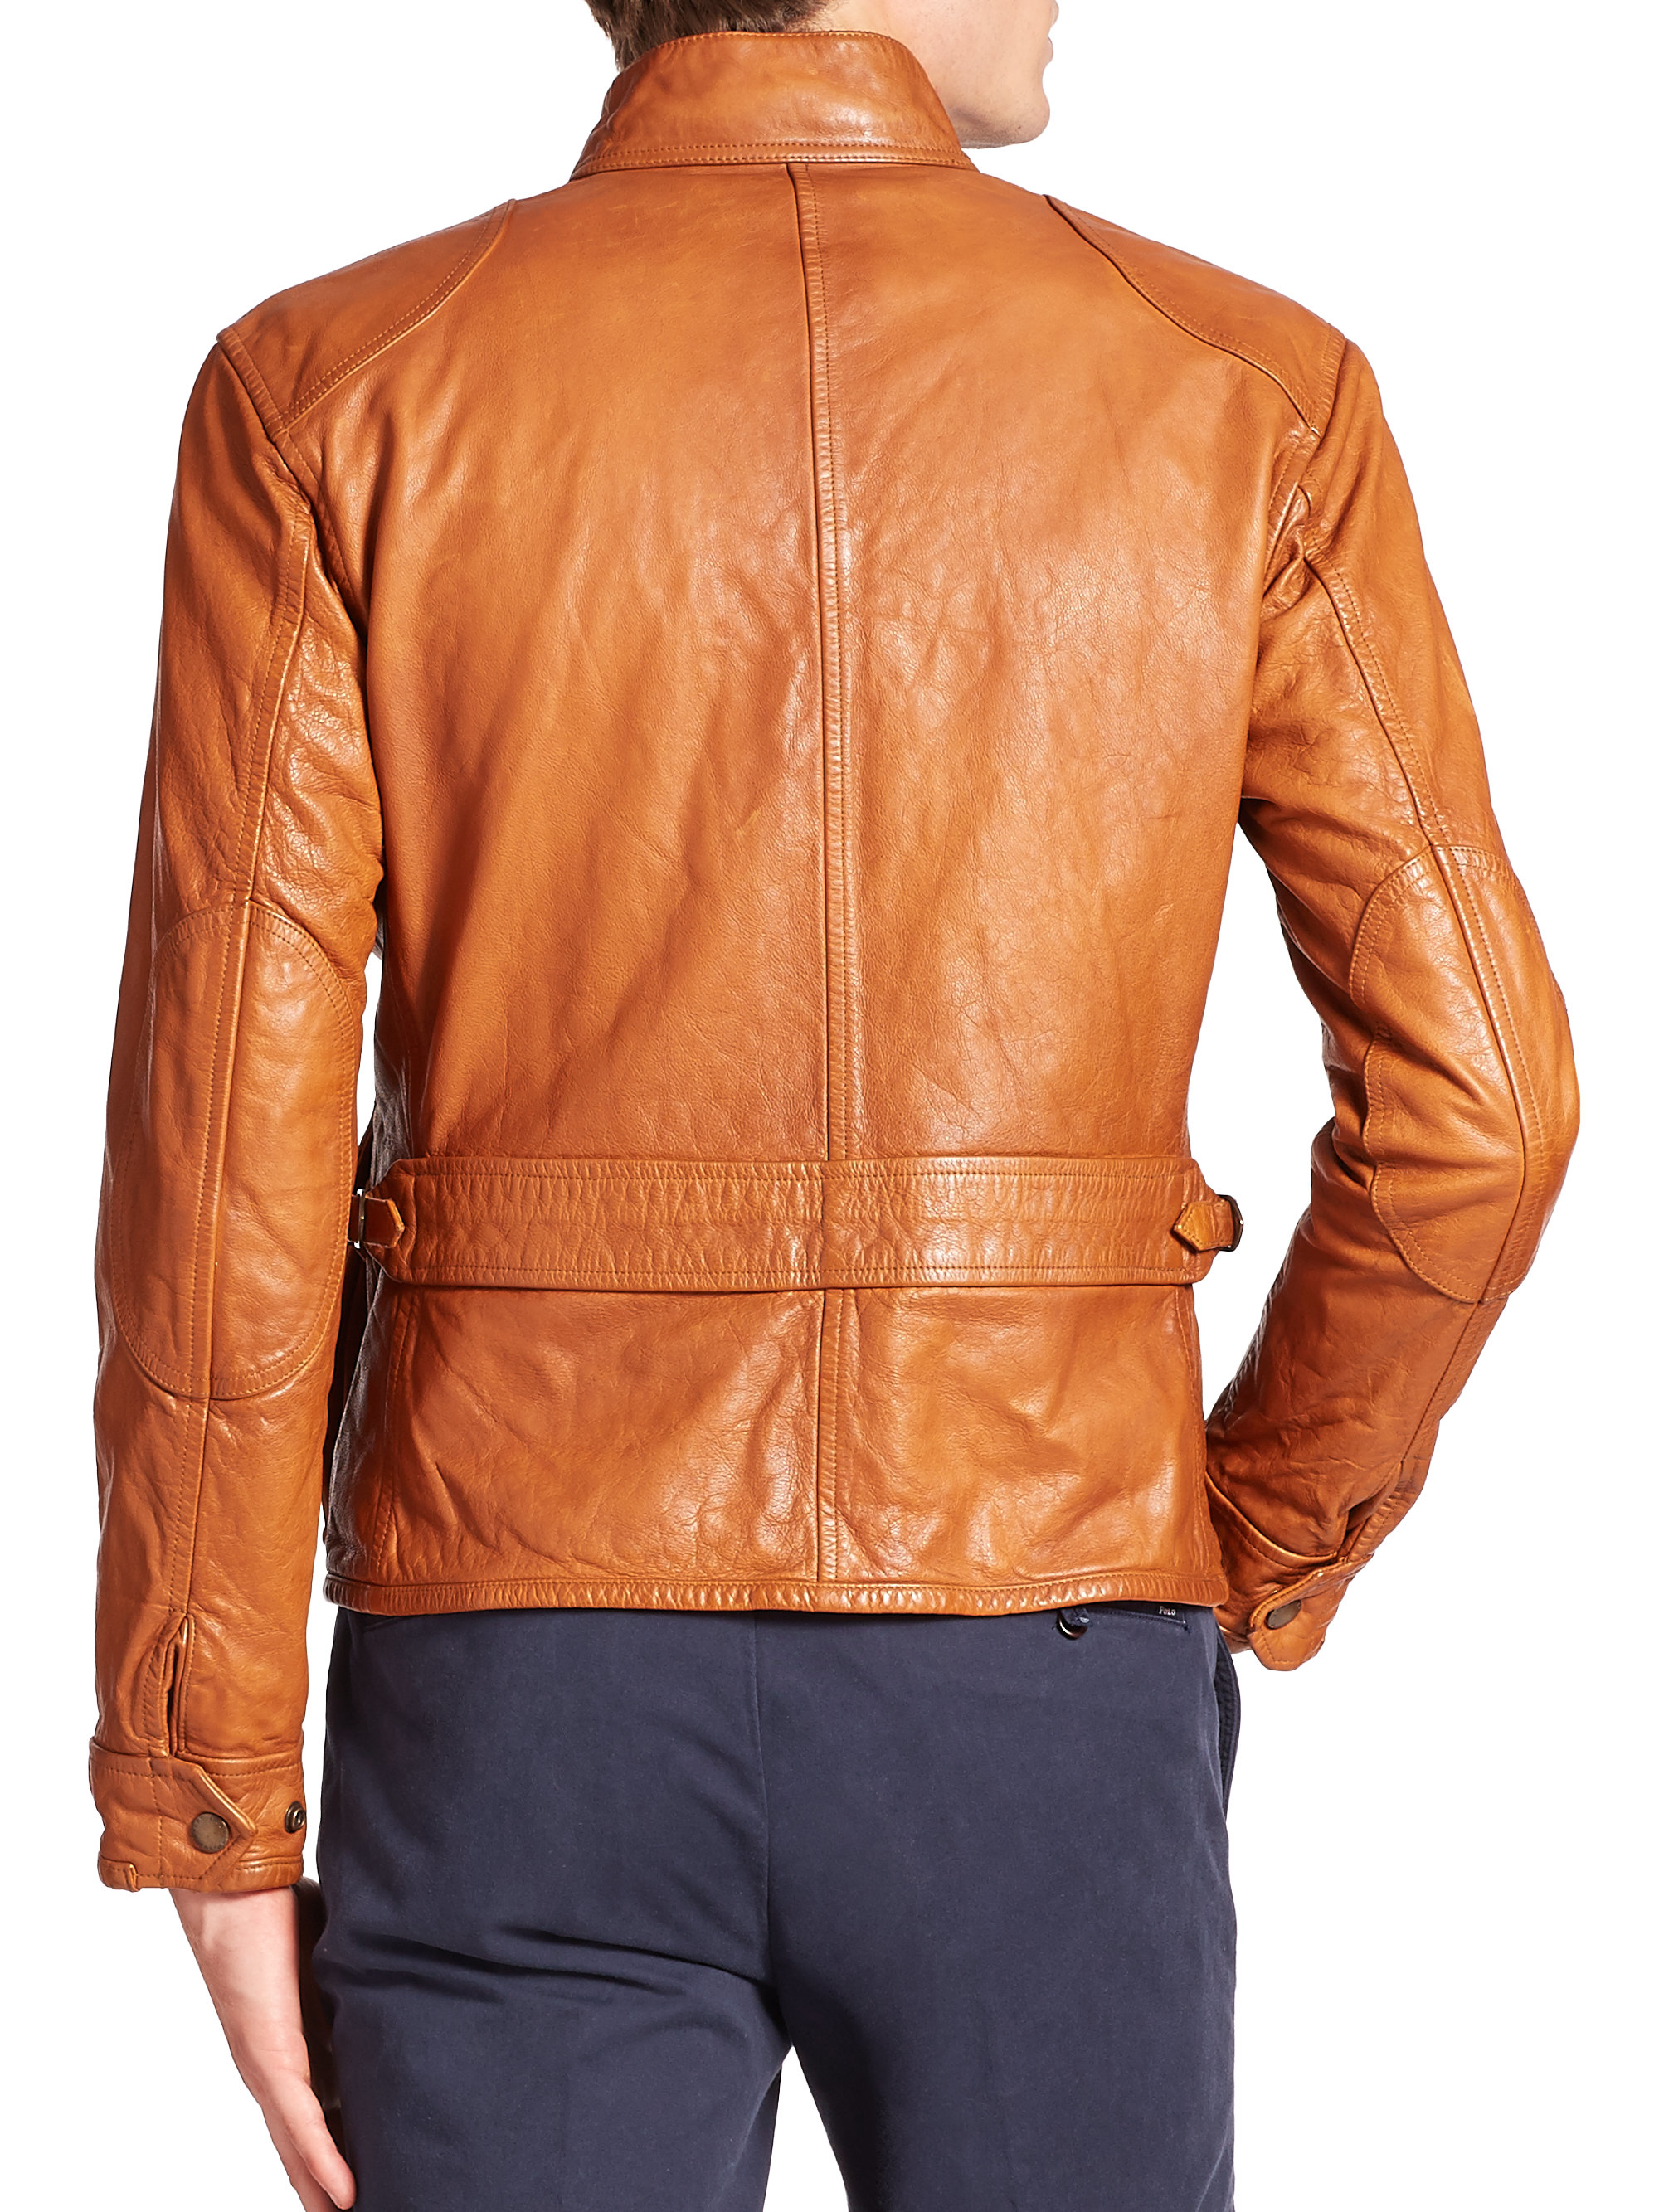 1ad373729 ... order lyst polo ralph lauren southbury leather biker jacket in brown  for men 1d9cf 83c78